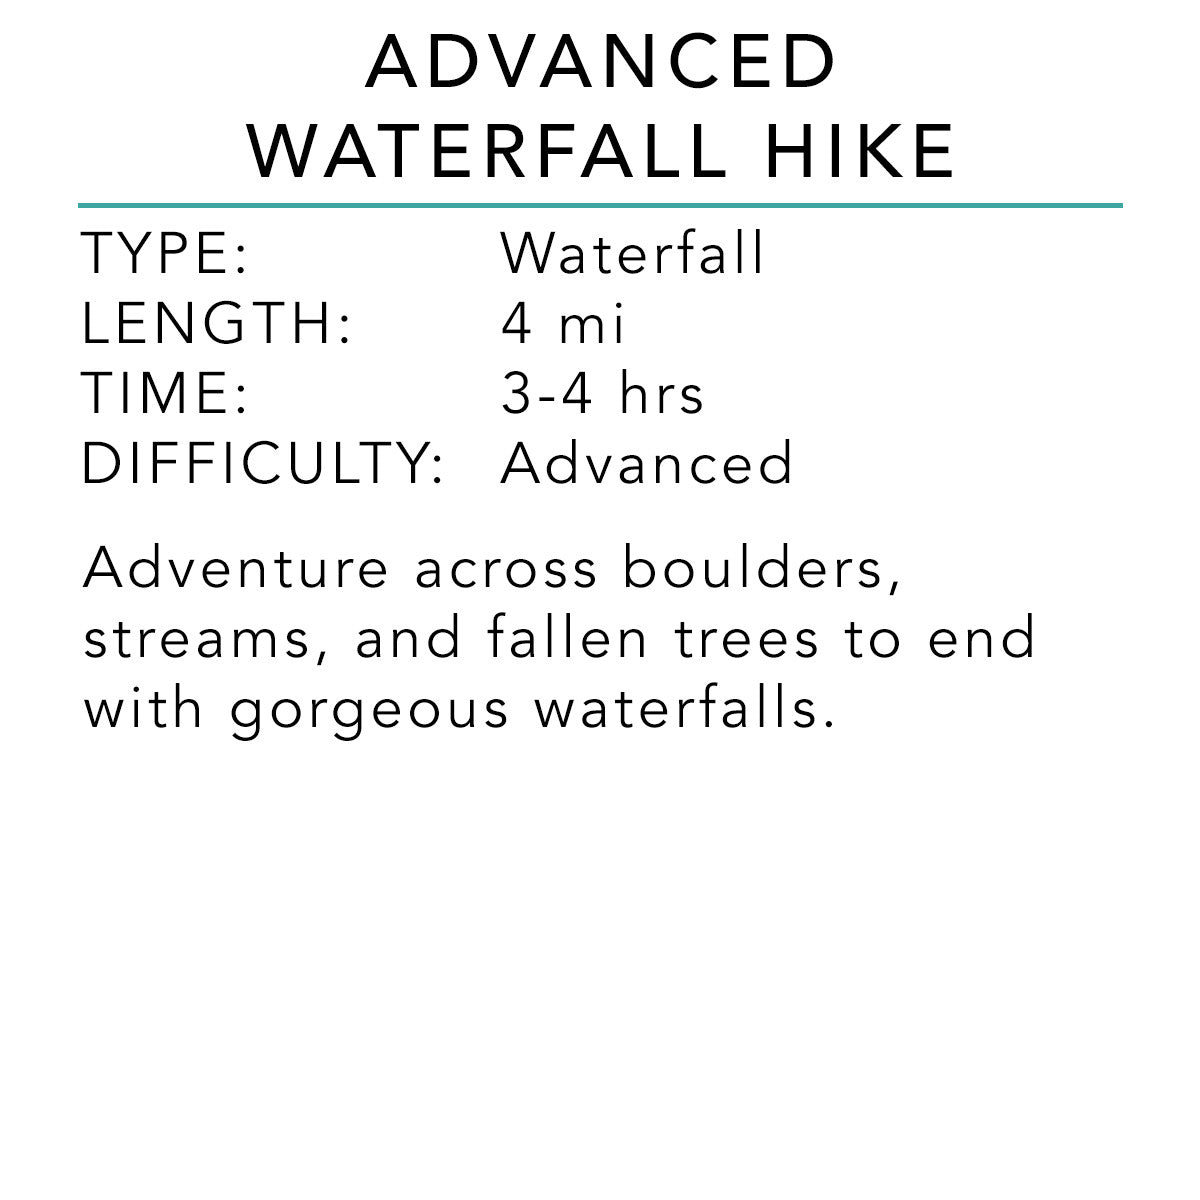 Advanced Waterfall Hike